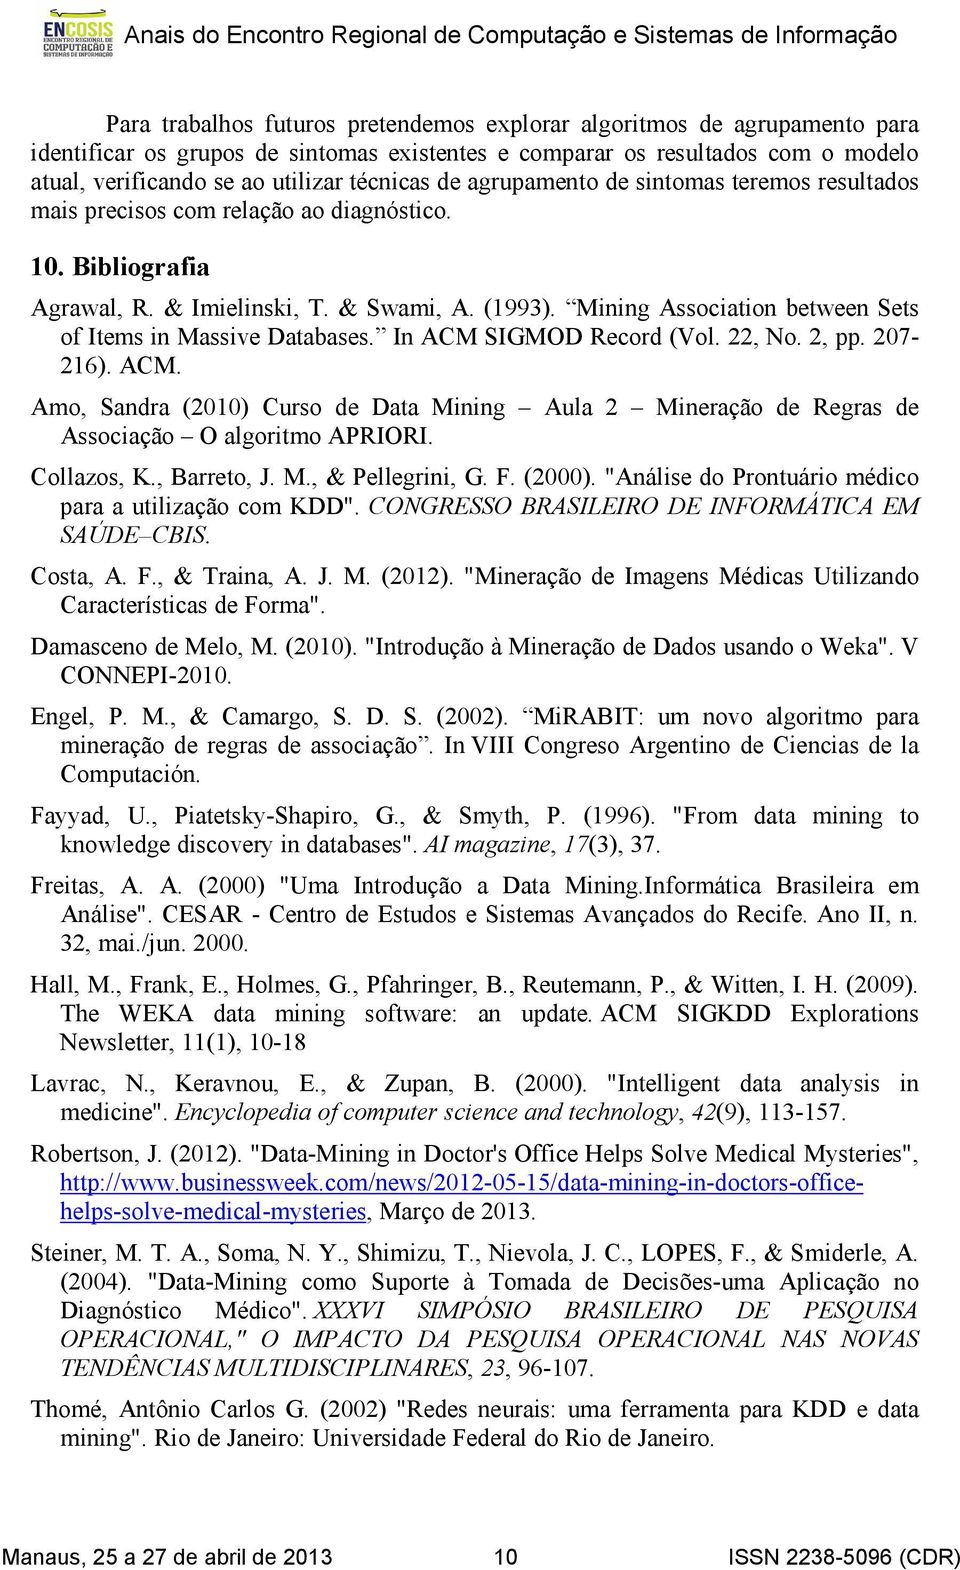 Mining Association between Sets of Items in Massive Databases. In ACM SIGMOD Record (Vol. 22, No. 2, pp. 207-216). ACM. Amo, Sandra (2010) Curso de Data Mining Aula 2 Mineração de Regras de Associação O algoritmo APRIORI.